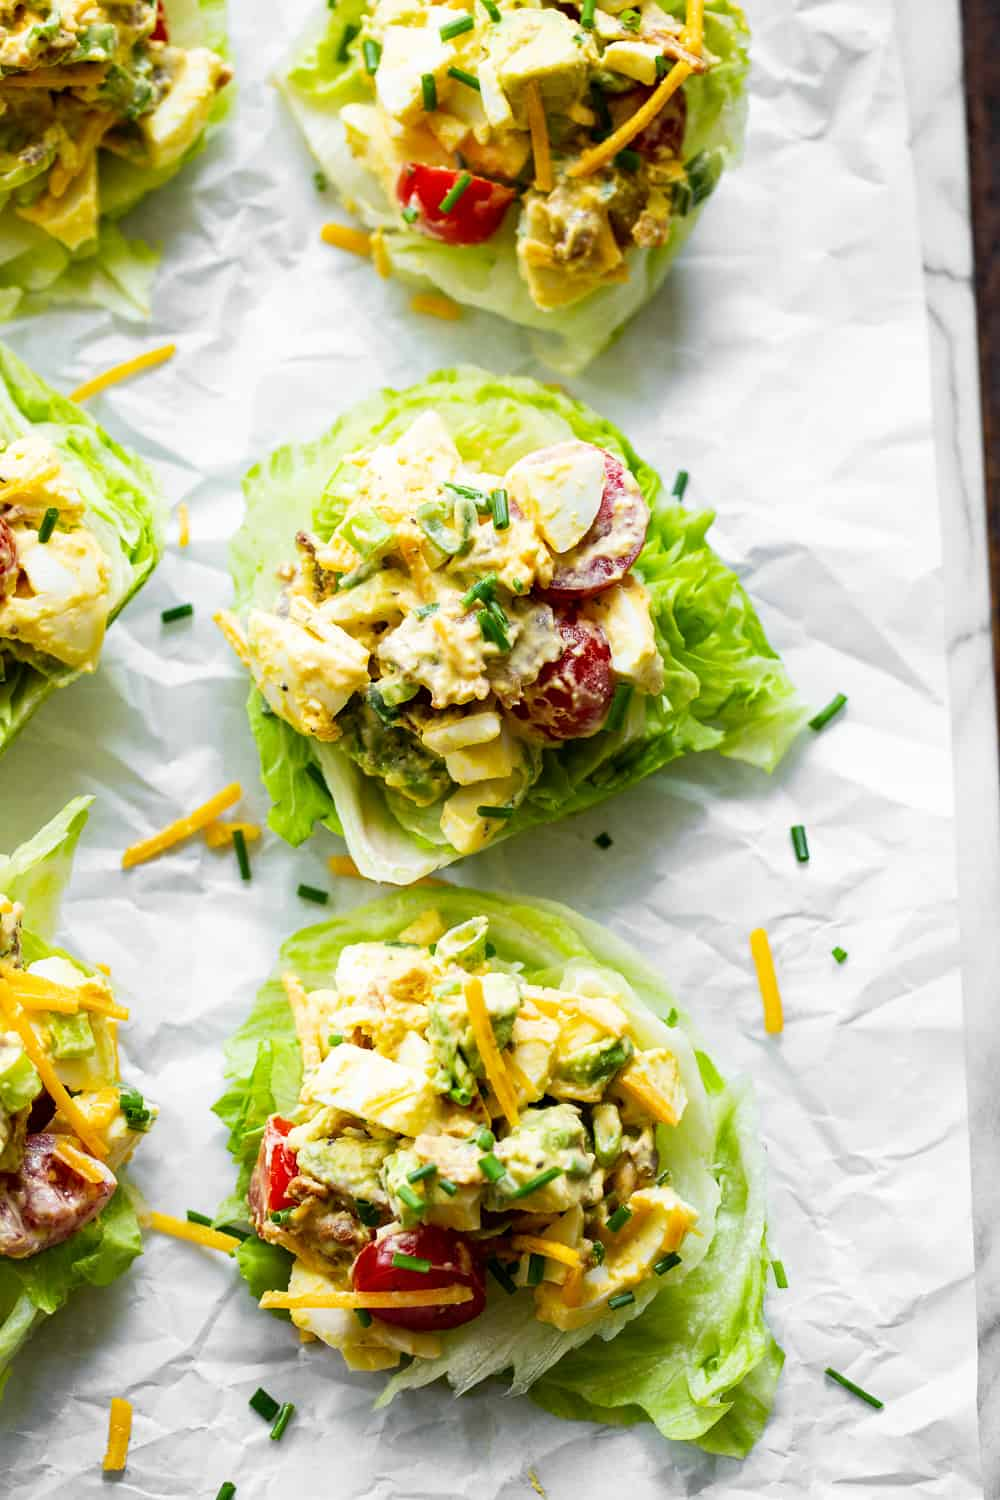 This cobb egg salad has all the goodies you'll find in your favorite cobb salad! Perfect for summer lunches and picnics, serve it over a simple green salad or in lettuce wraps for a protein packed meal with tons of flavor! Paleo, Whole30, low carb and keto friendly. #paleo #keto #whole30 #cleaneating